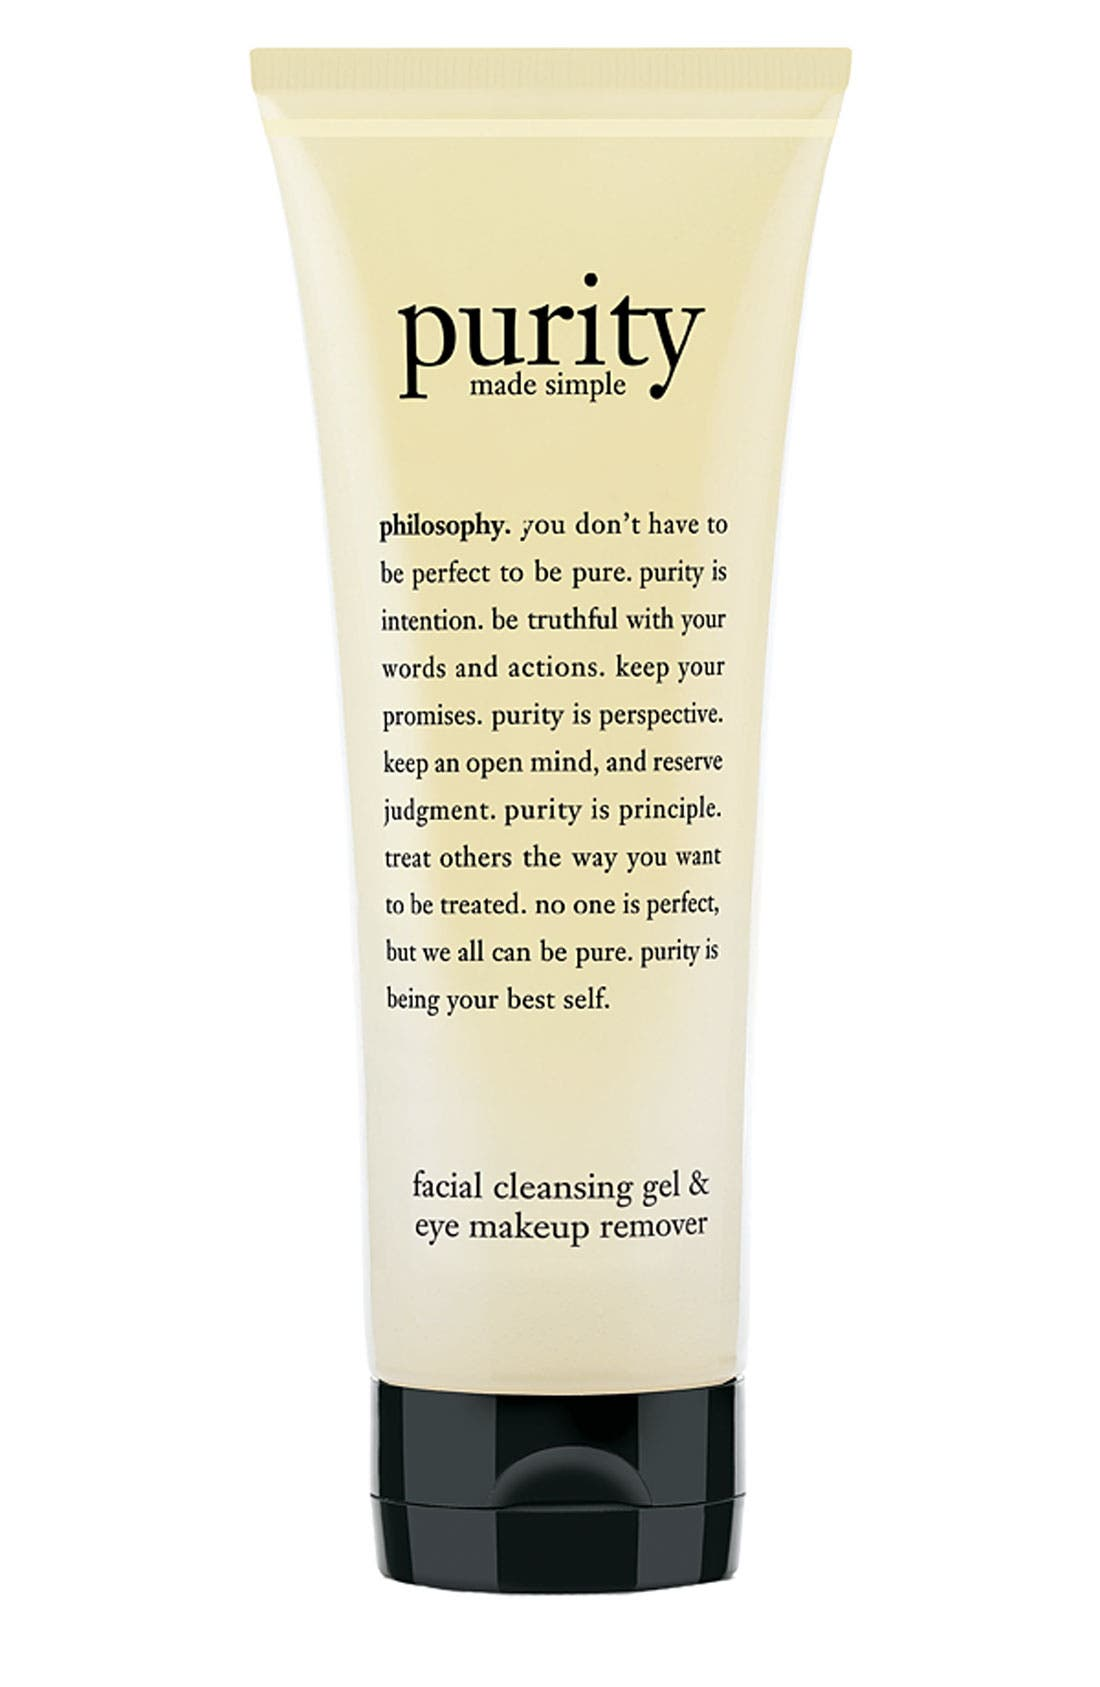 PHILOSOPHY 'purity made simple' facial cleansing gel & eye makeup remover, Main, color, NO COLOR